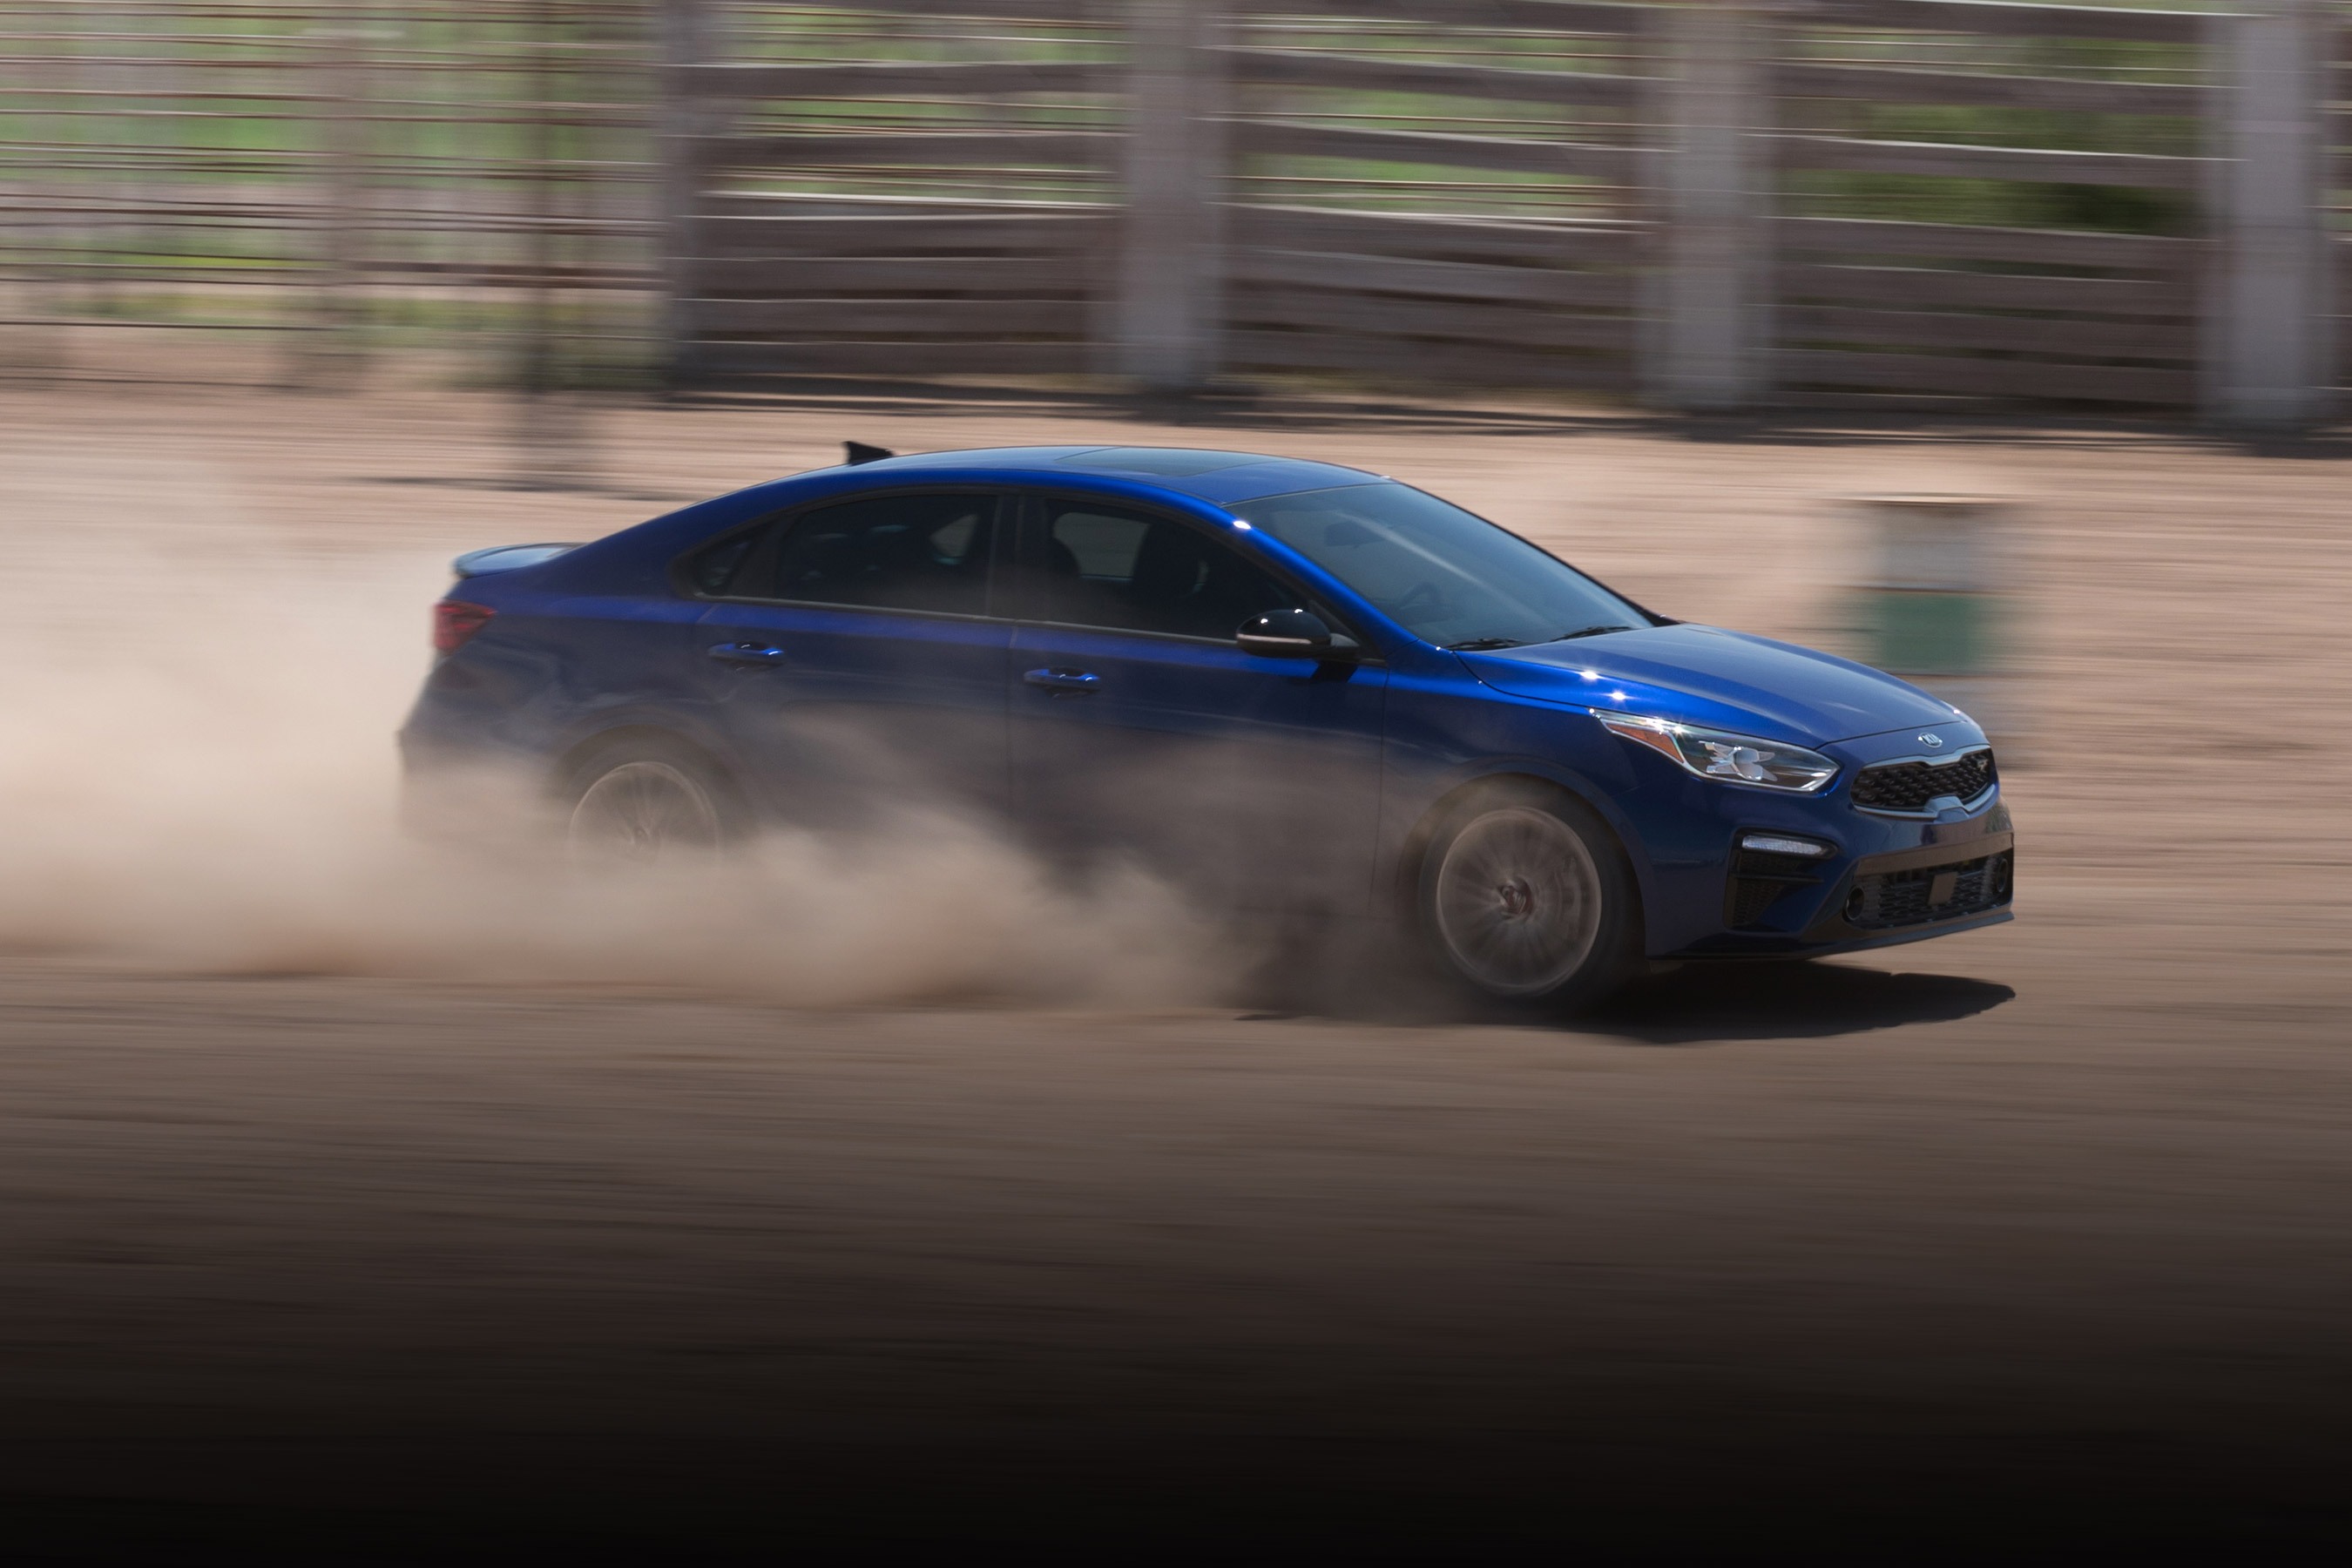 A Blue Kia Forte speeds with dirt kicking up under the wheels.